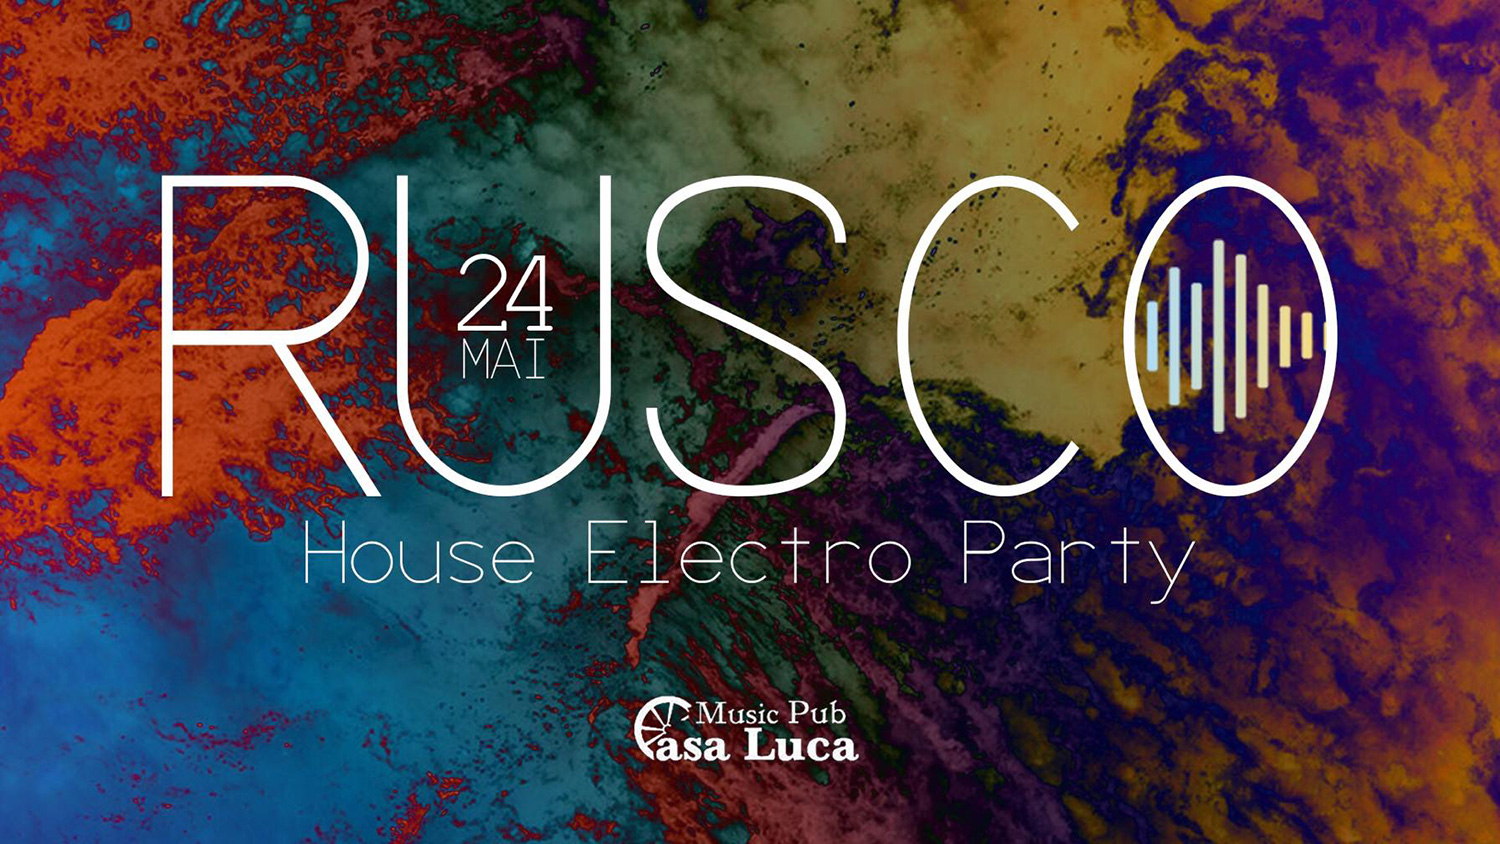 House Electro Party